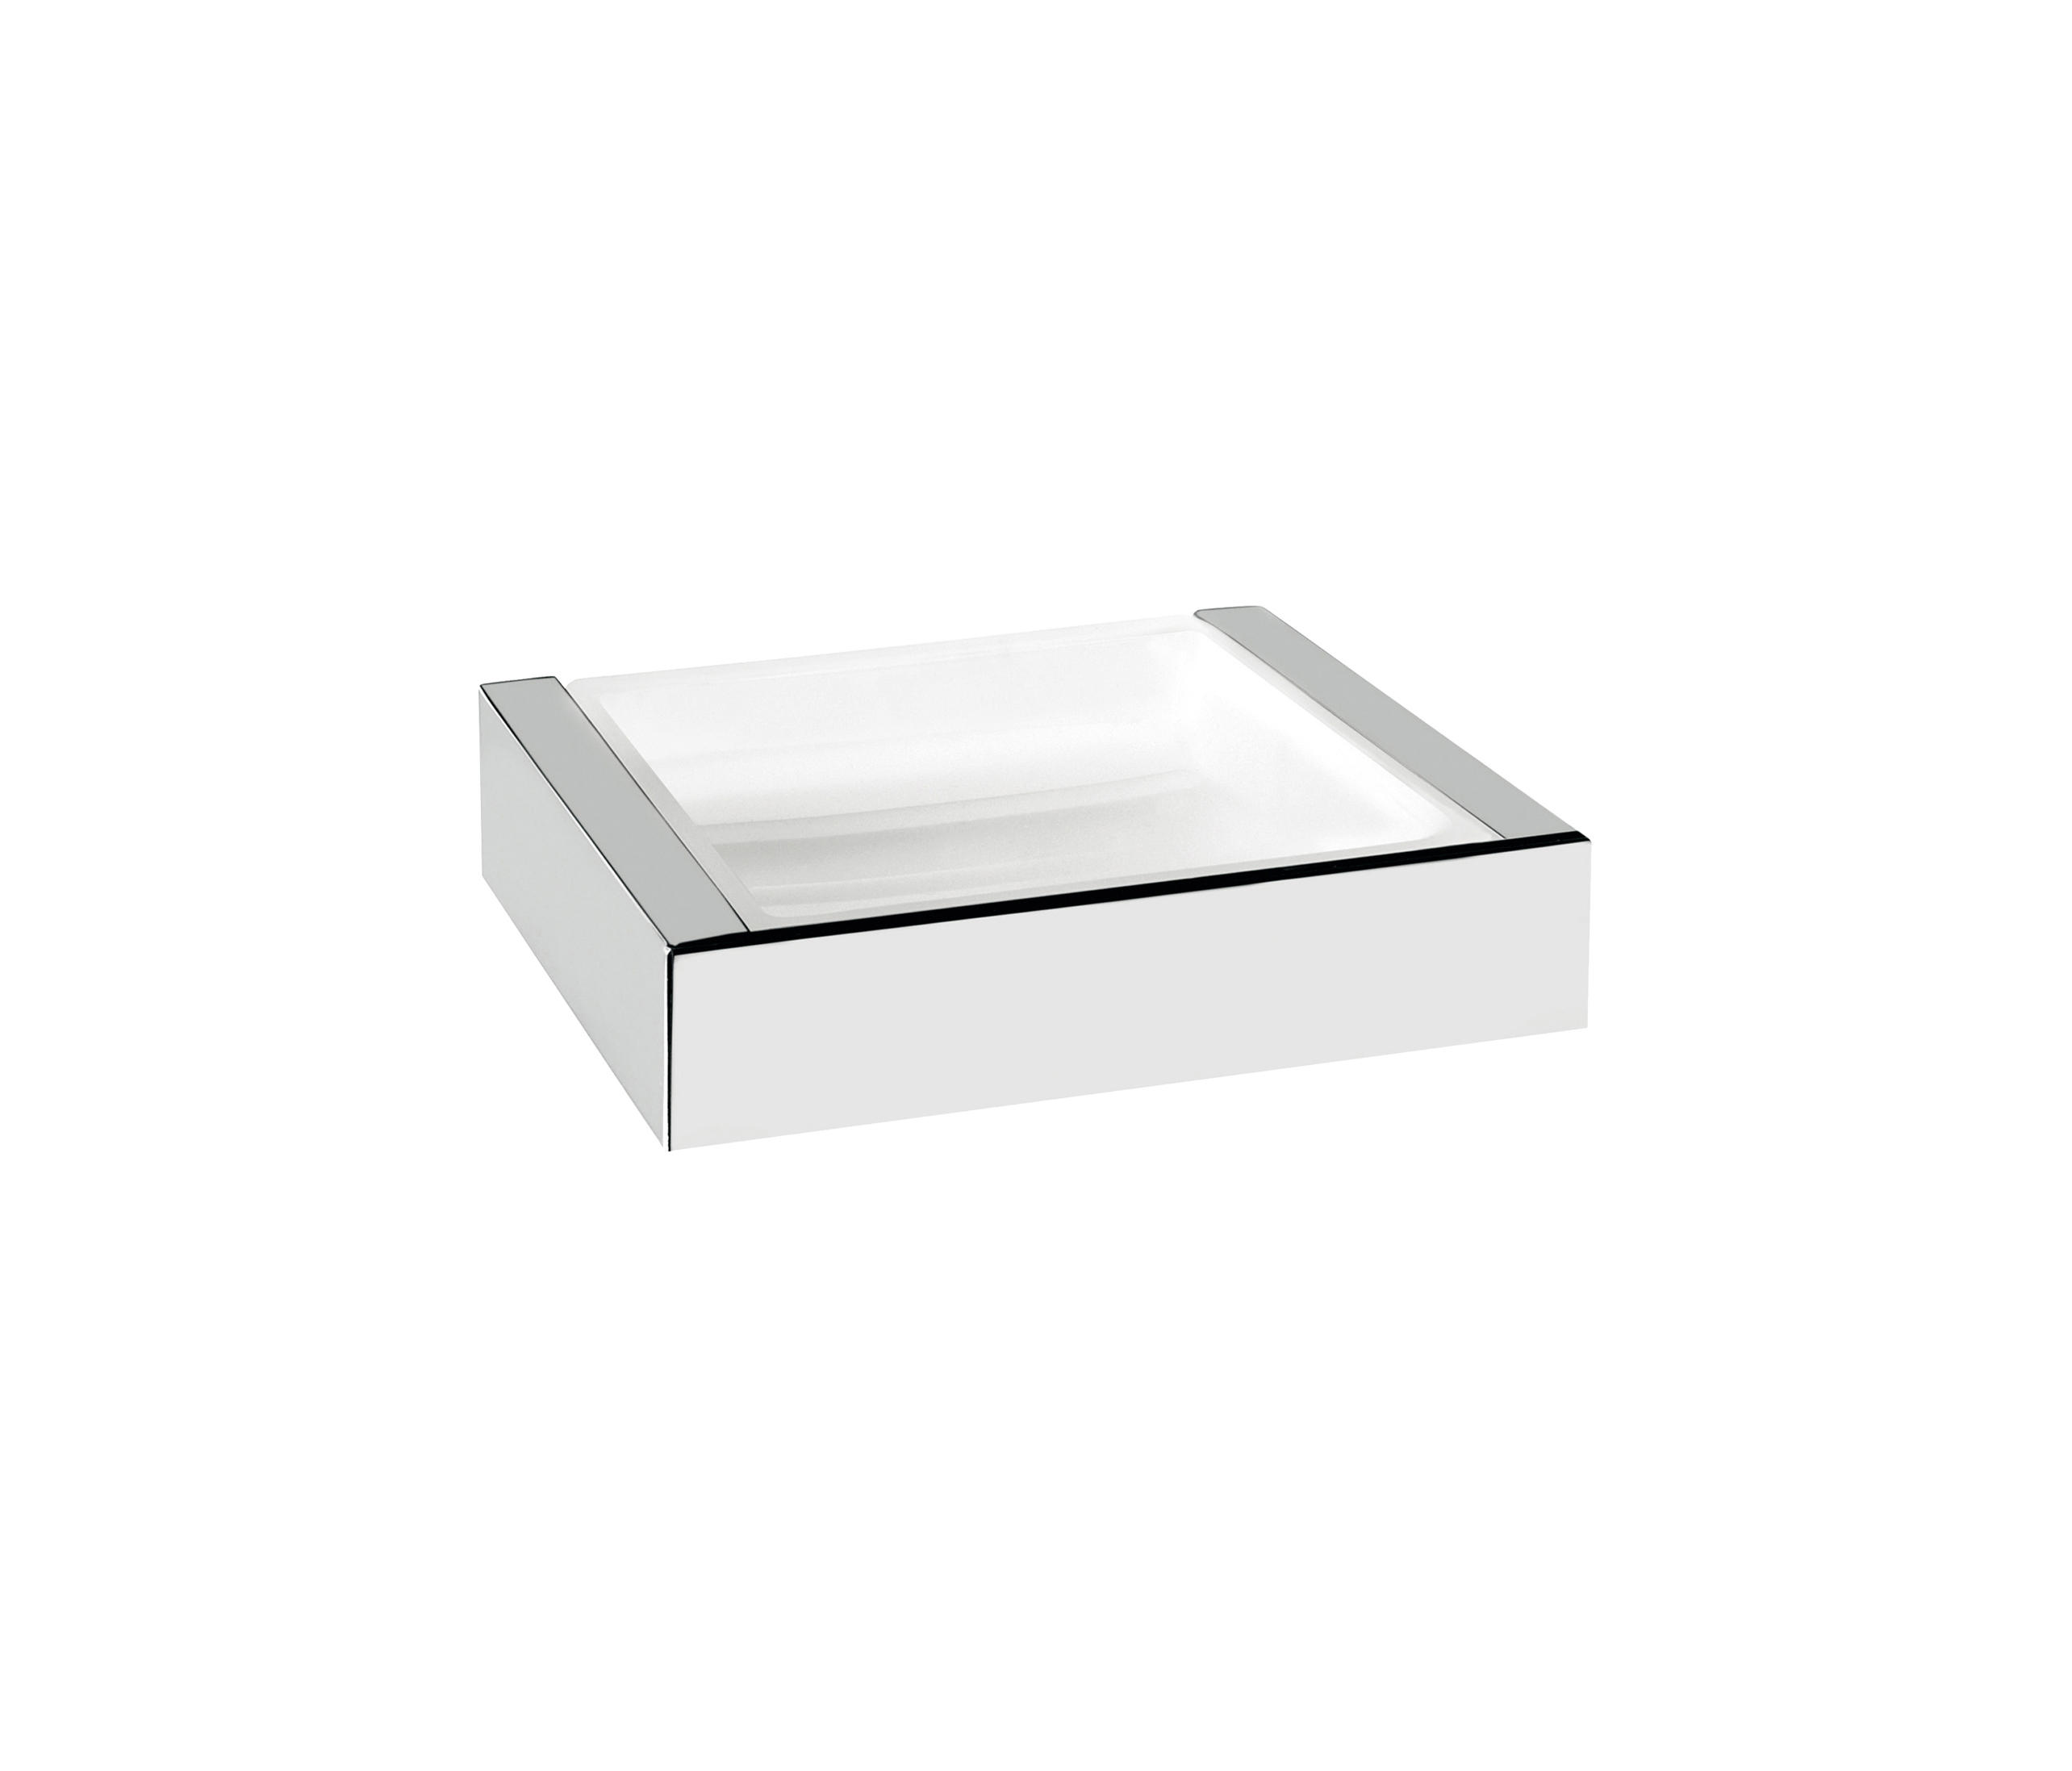 MODERN BATHROOM ACCESSORIES - Soap holders / dishes from Fir Italia ...